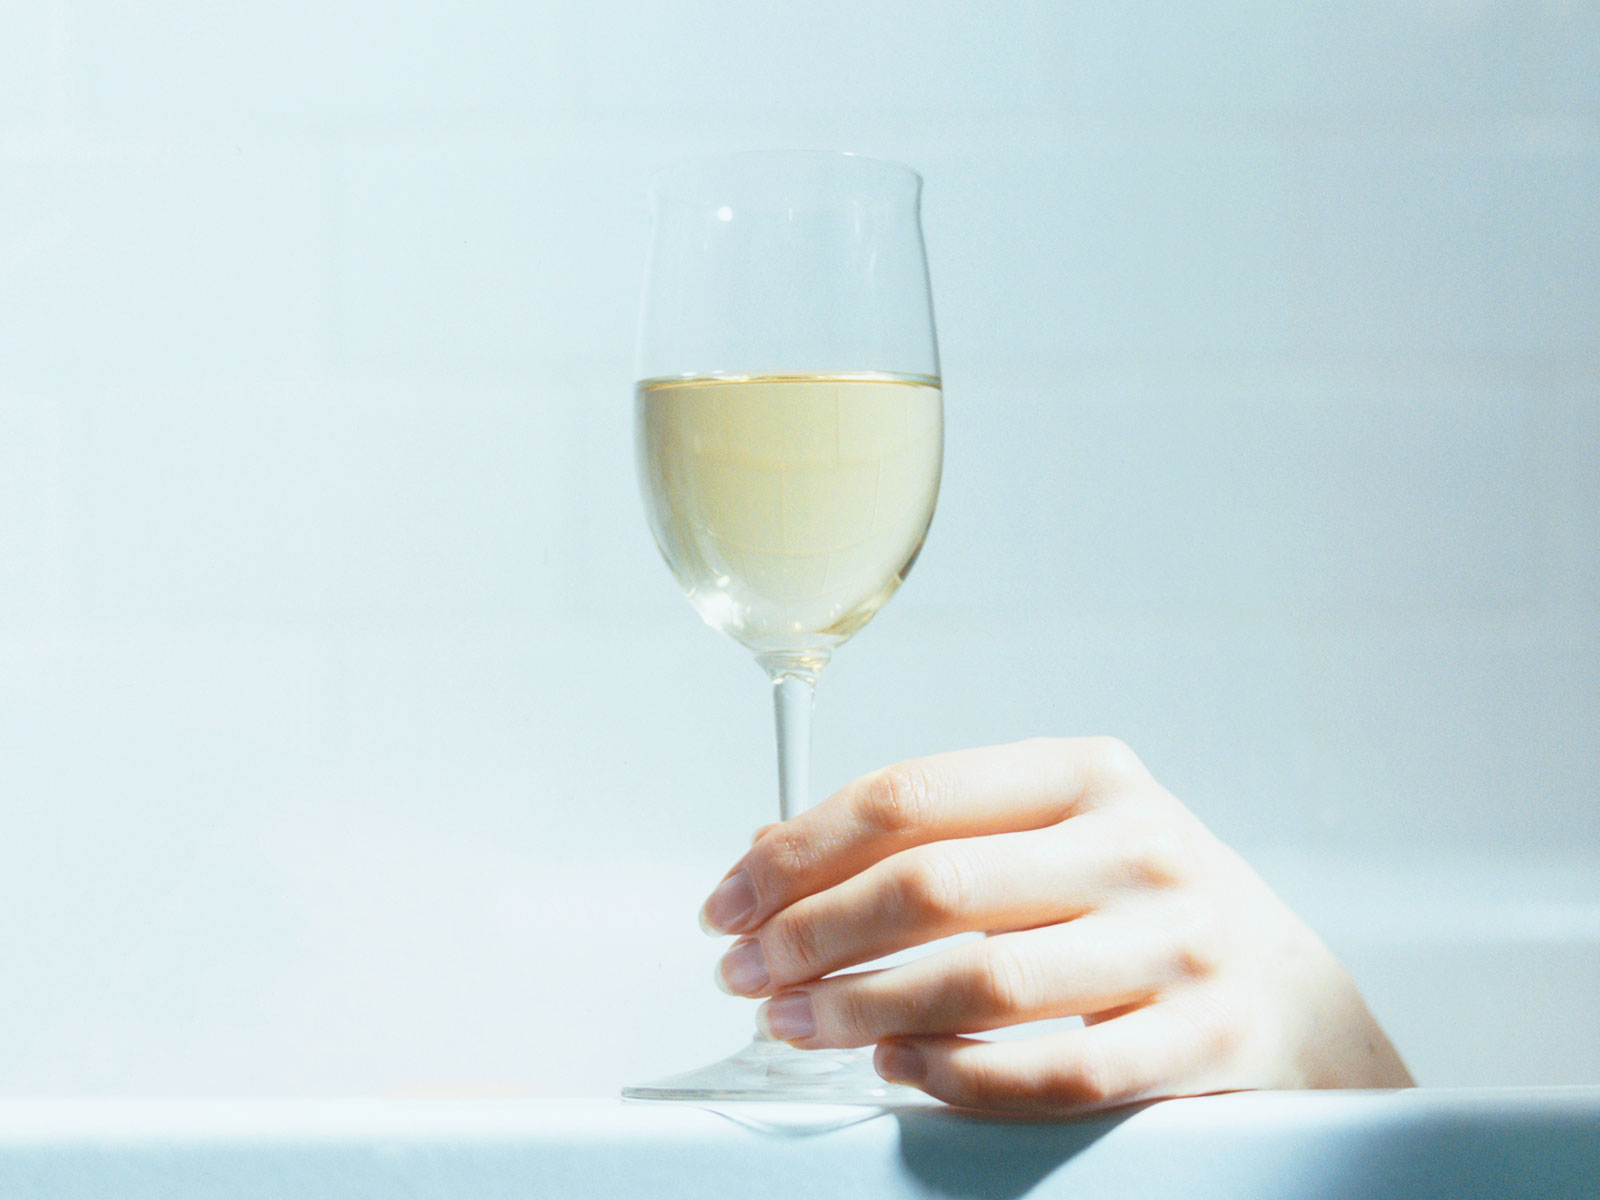 wine and beer int he shower food storage